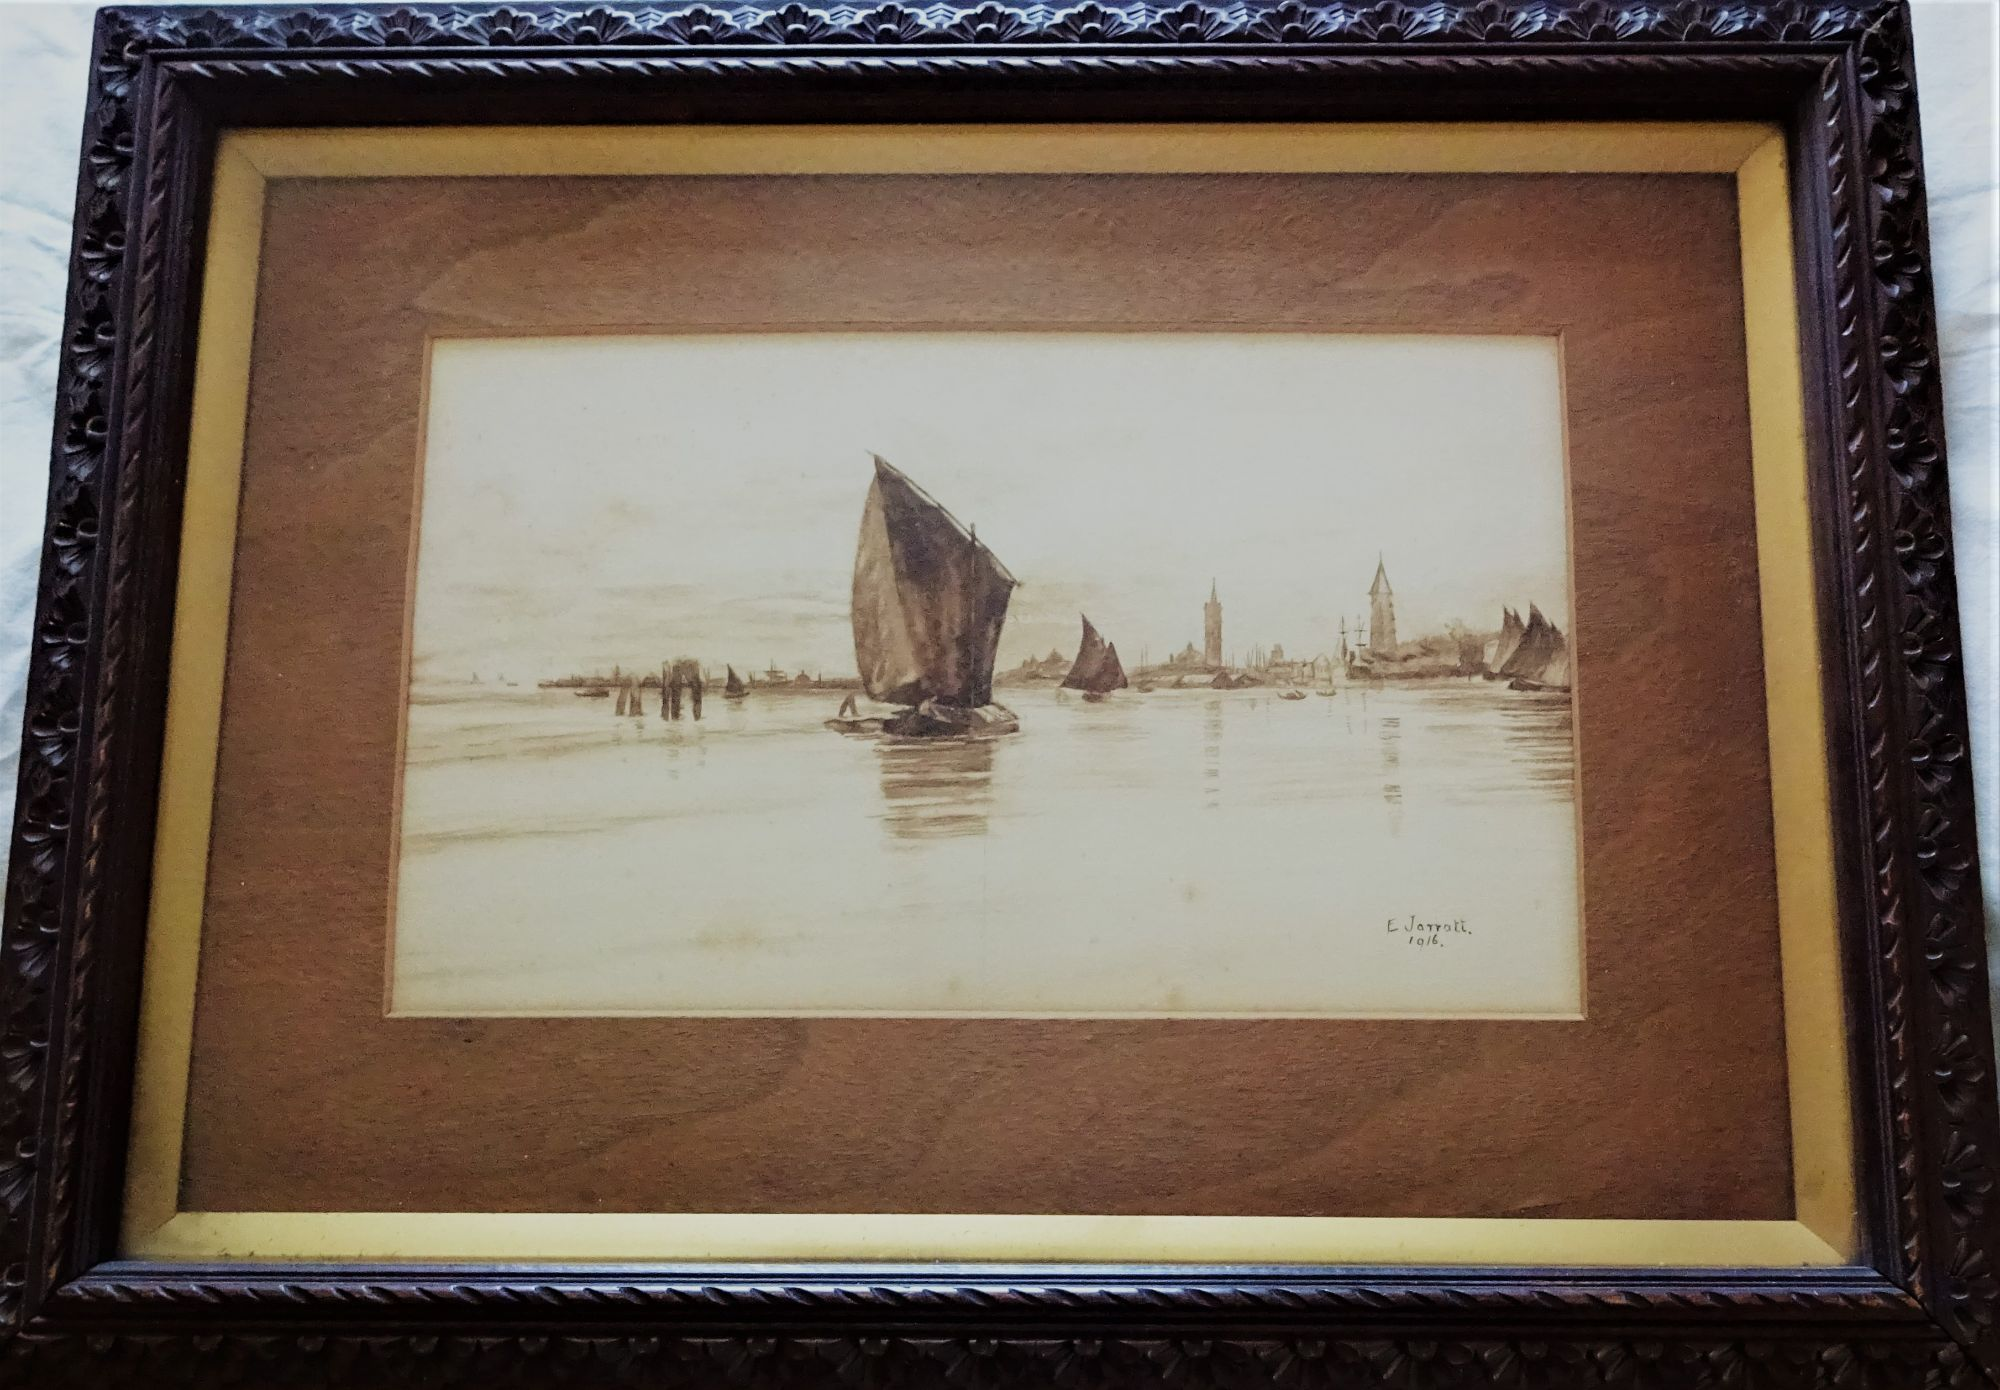 E. Jarratt, Dutch coastal scene, watercolour, 1916.